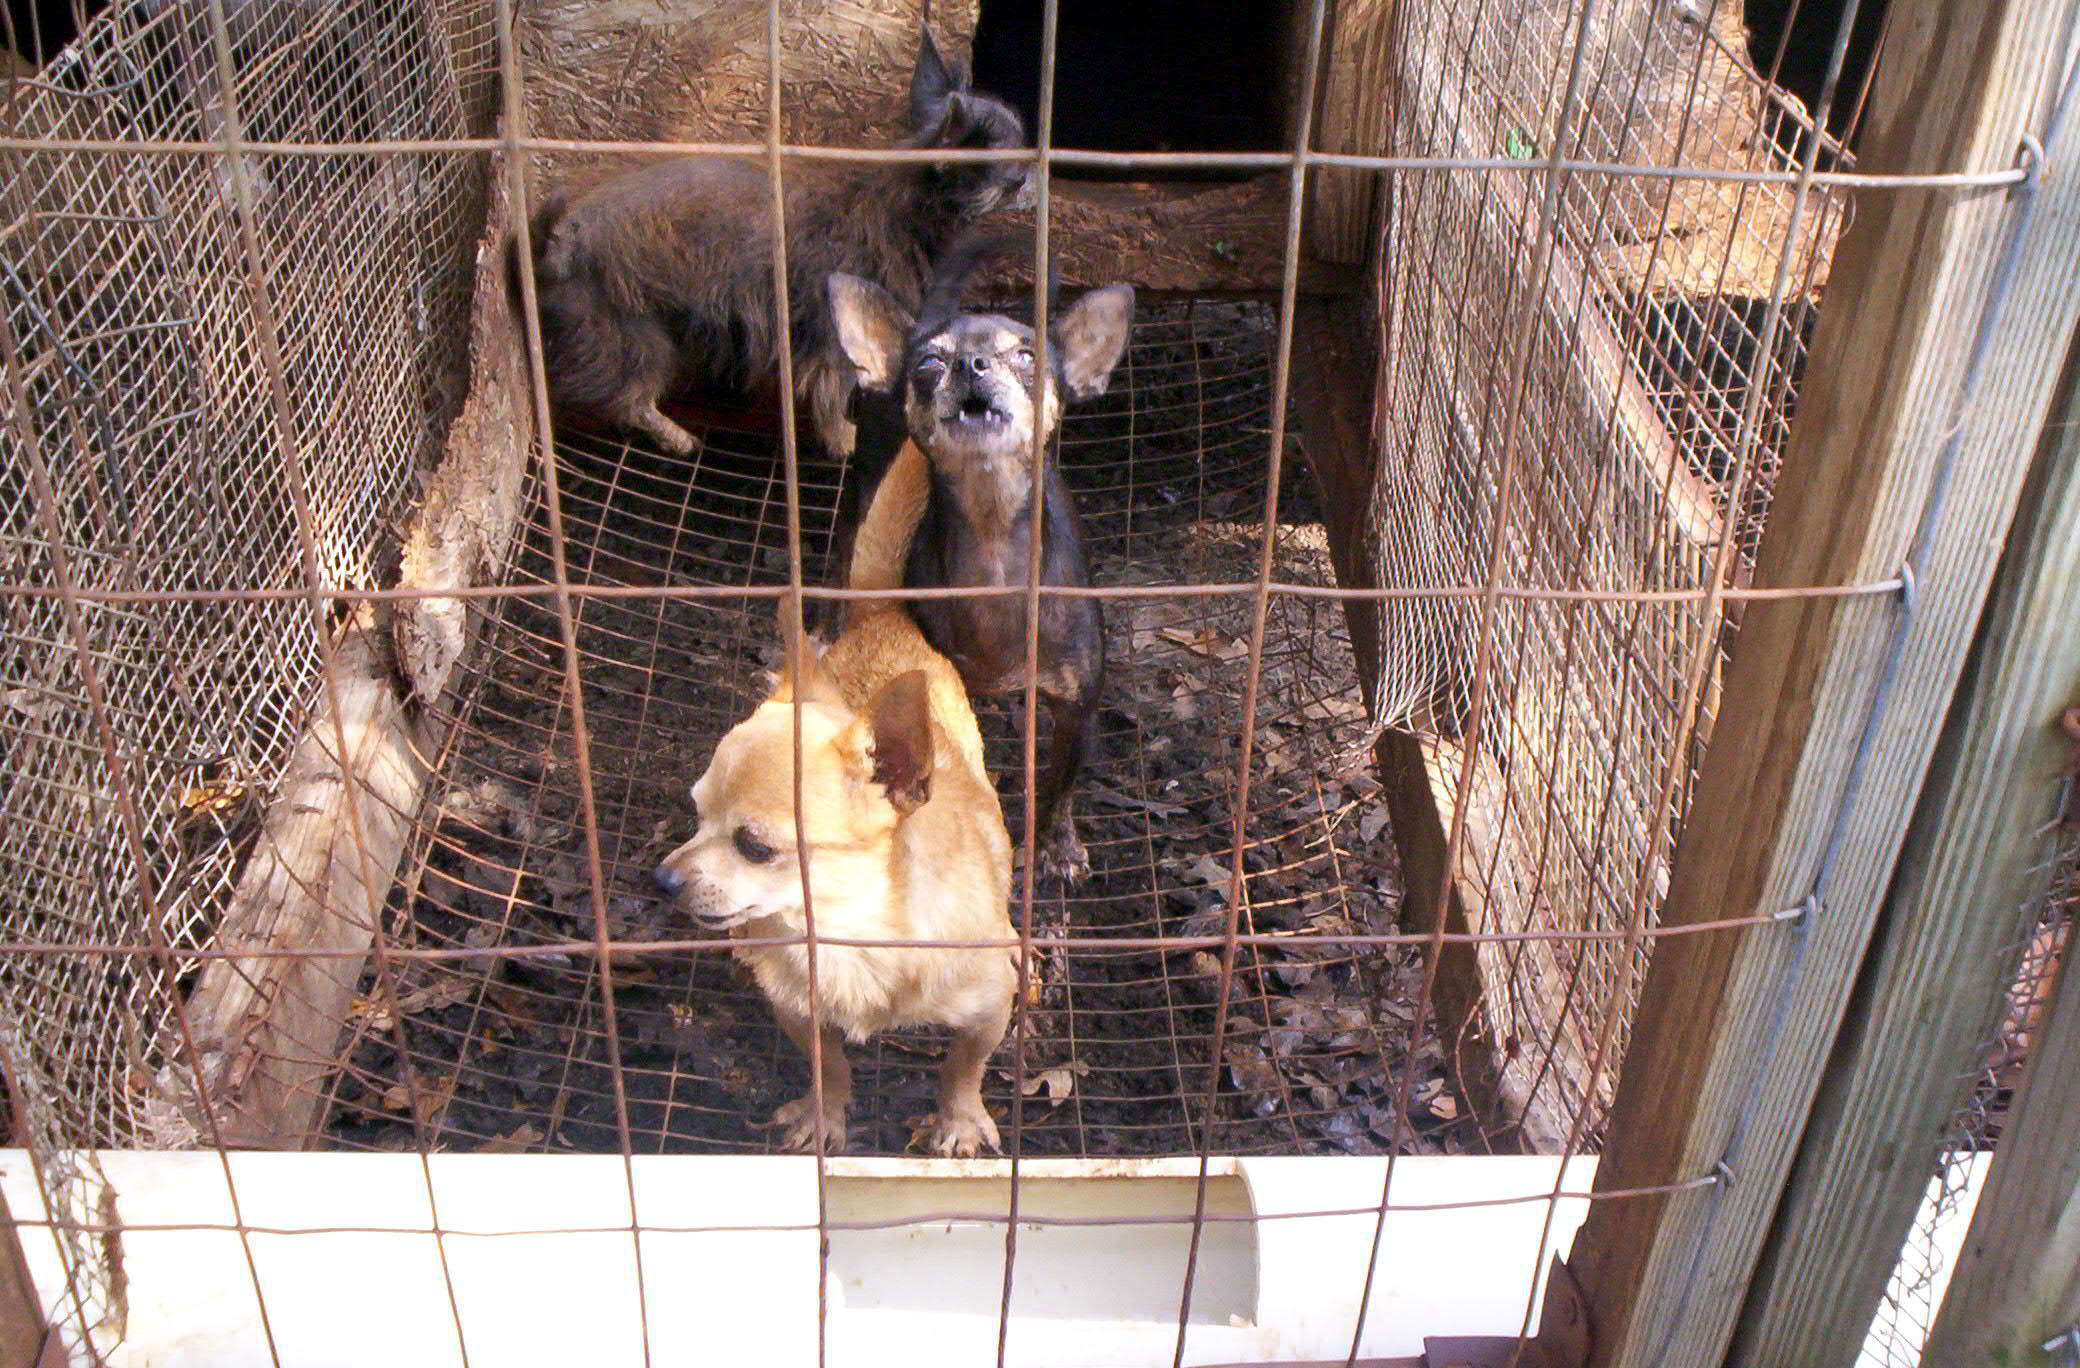 Pledge to End Puppy Mills